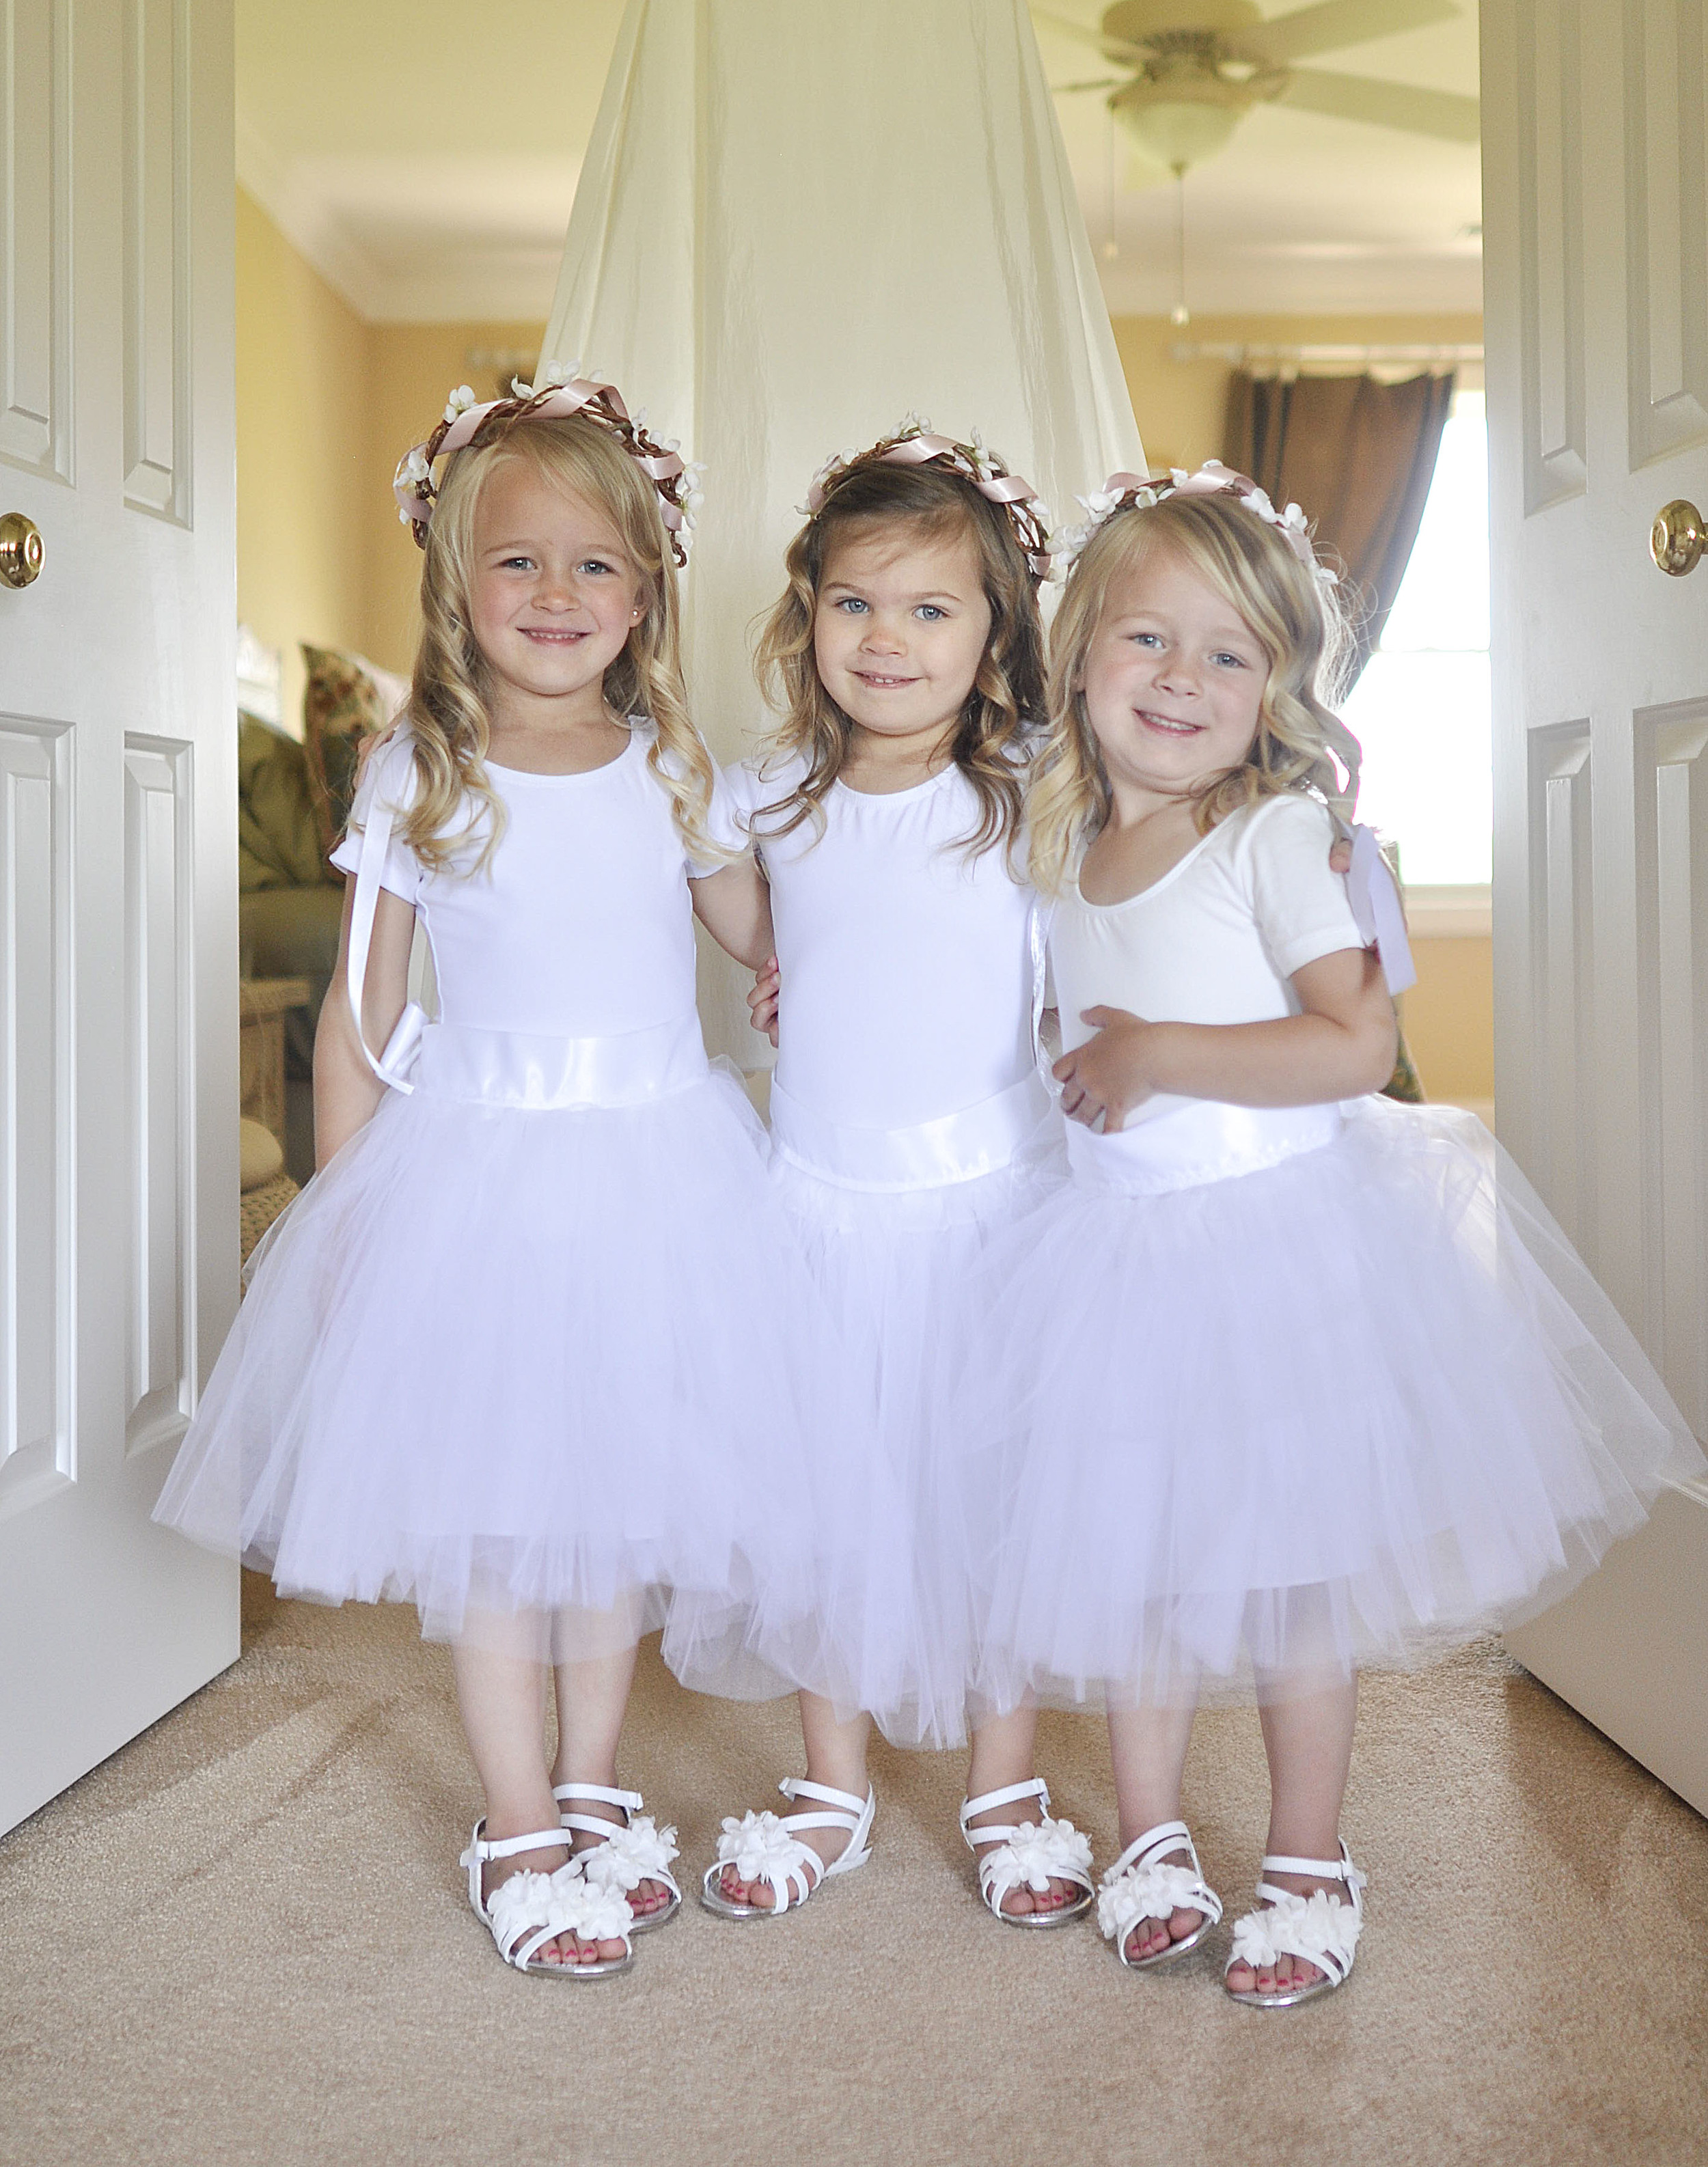 These flower girls were adorable! Three cousins who got to dress up together? Priceless.